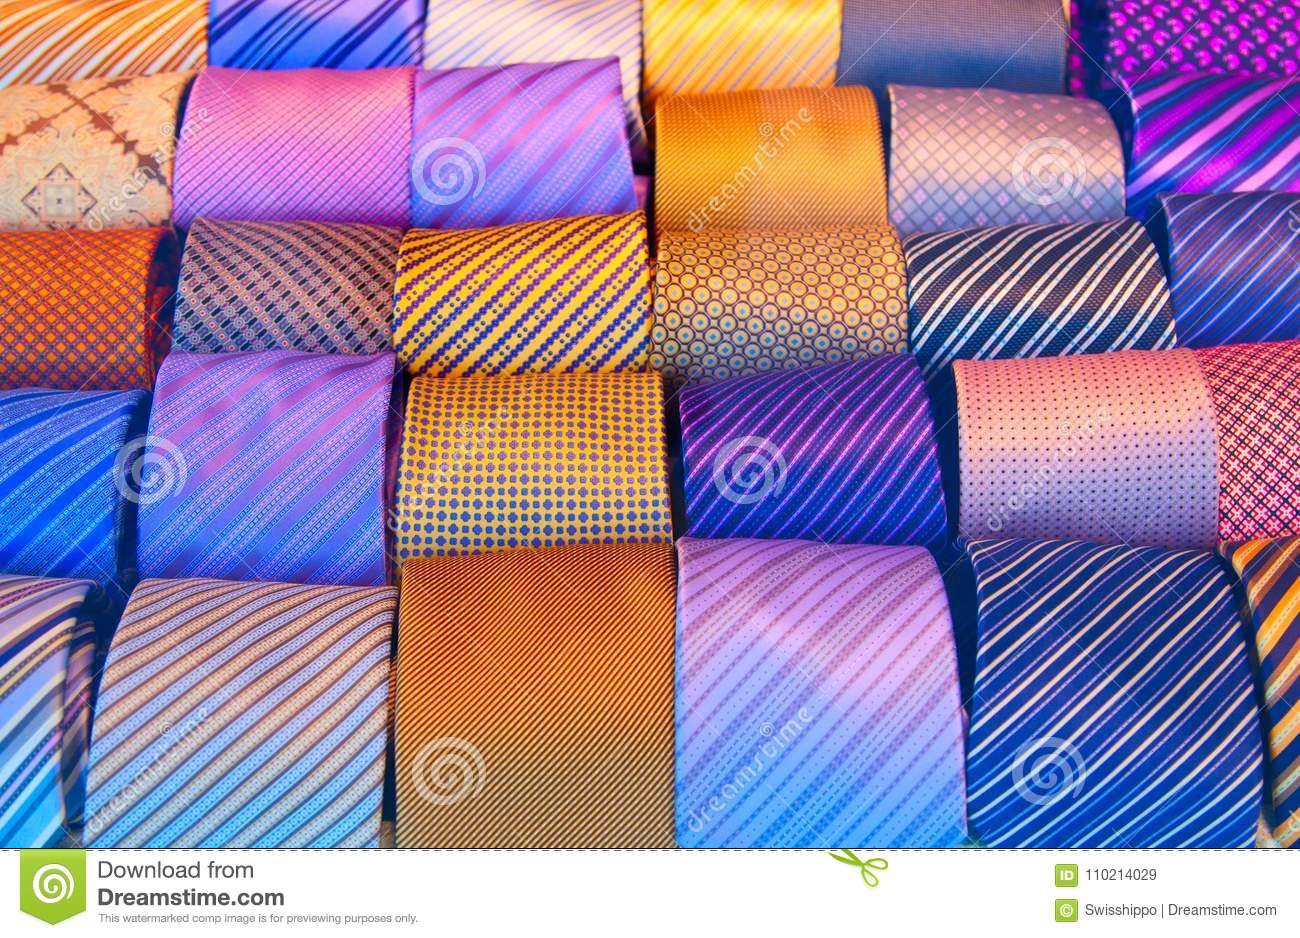 d6b64c139ff6 Tie collection stock image. Image of cloth, design, fashionable ...